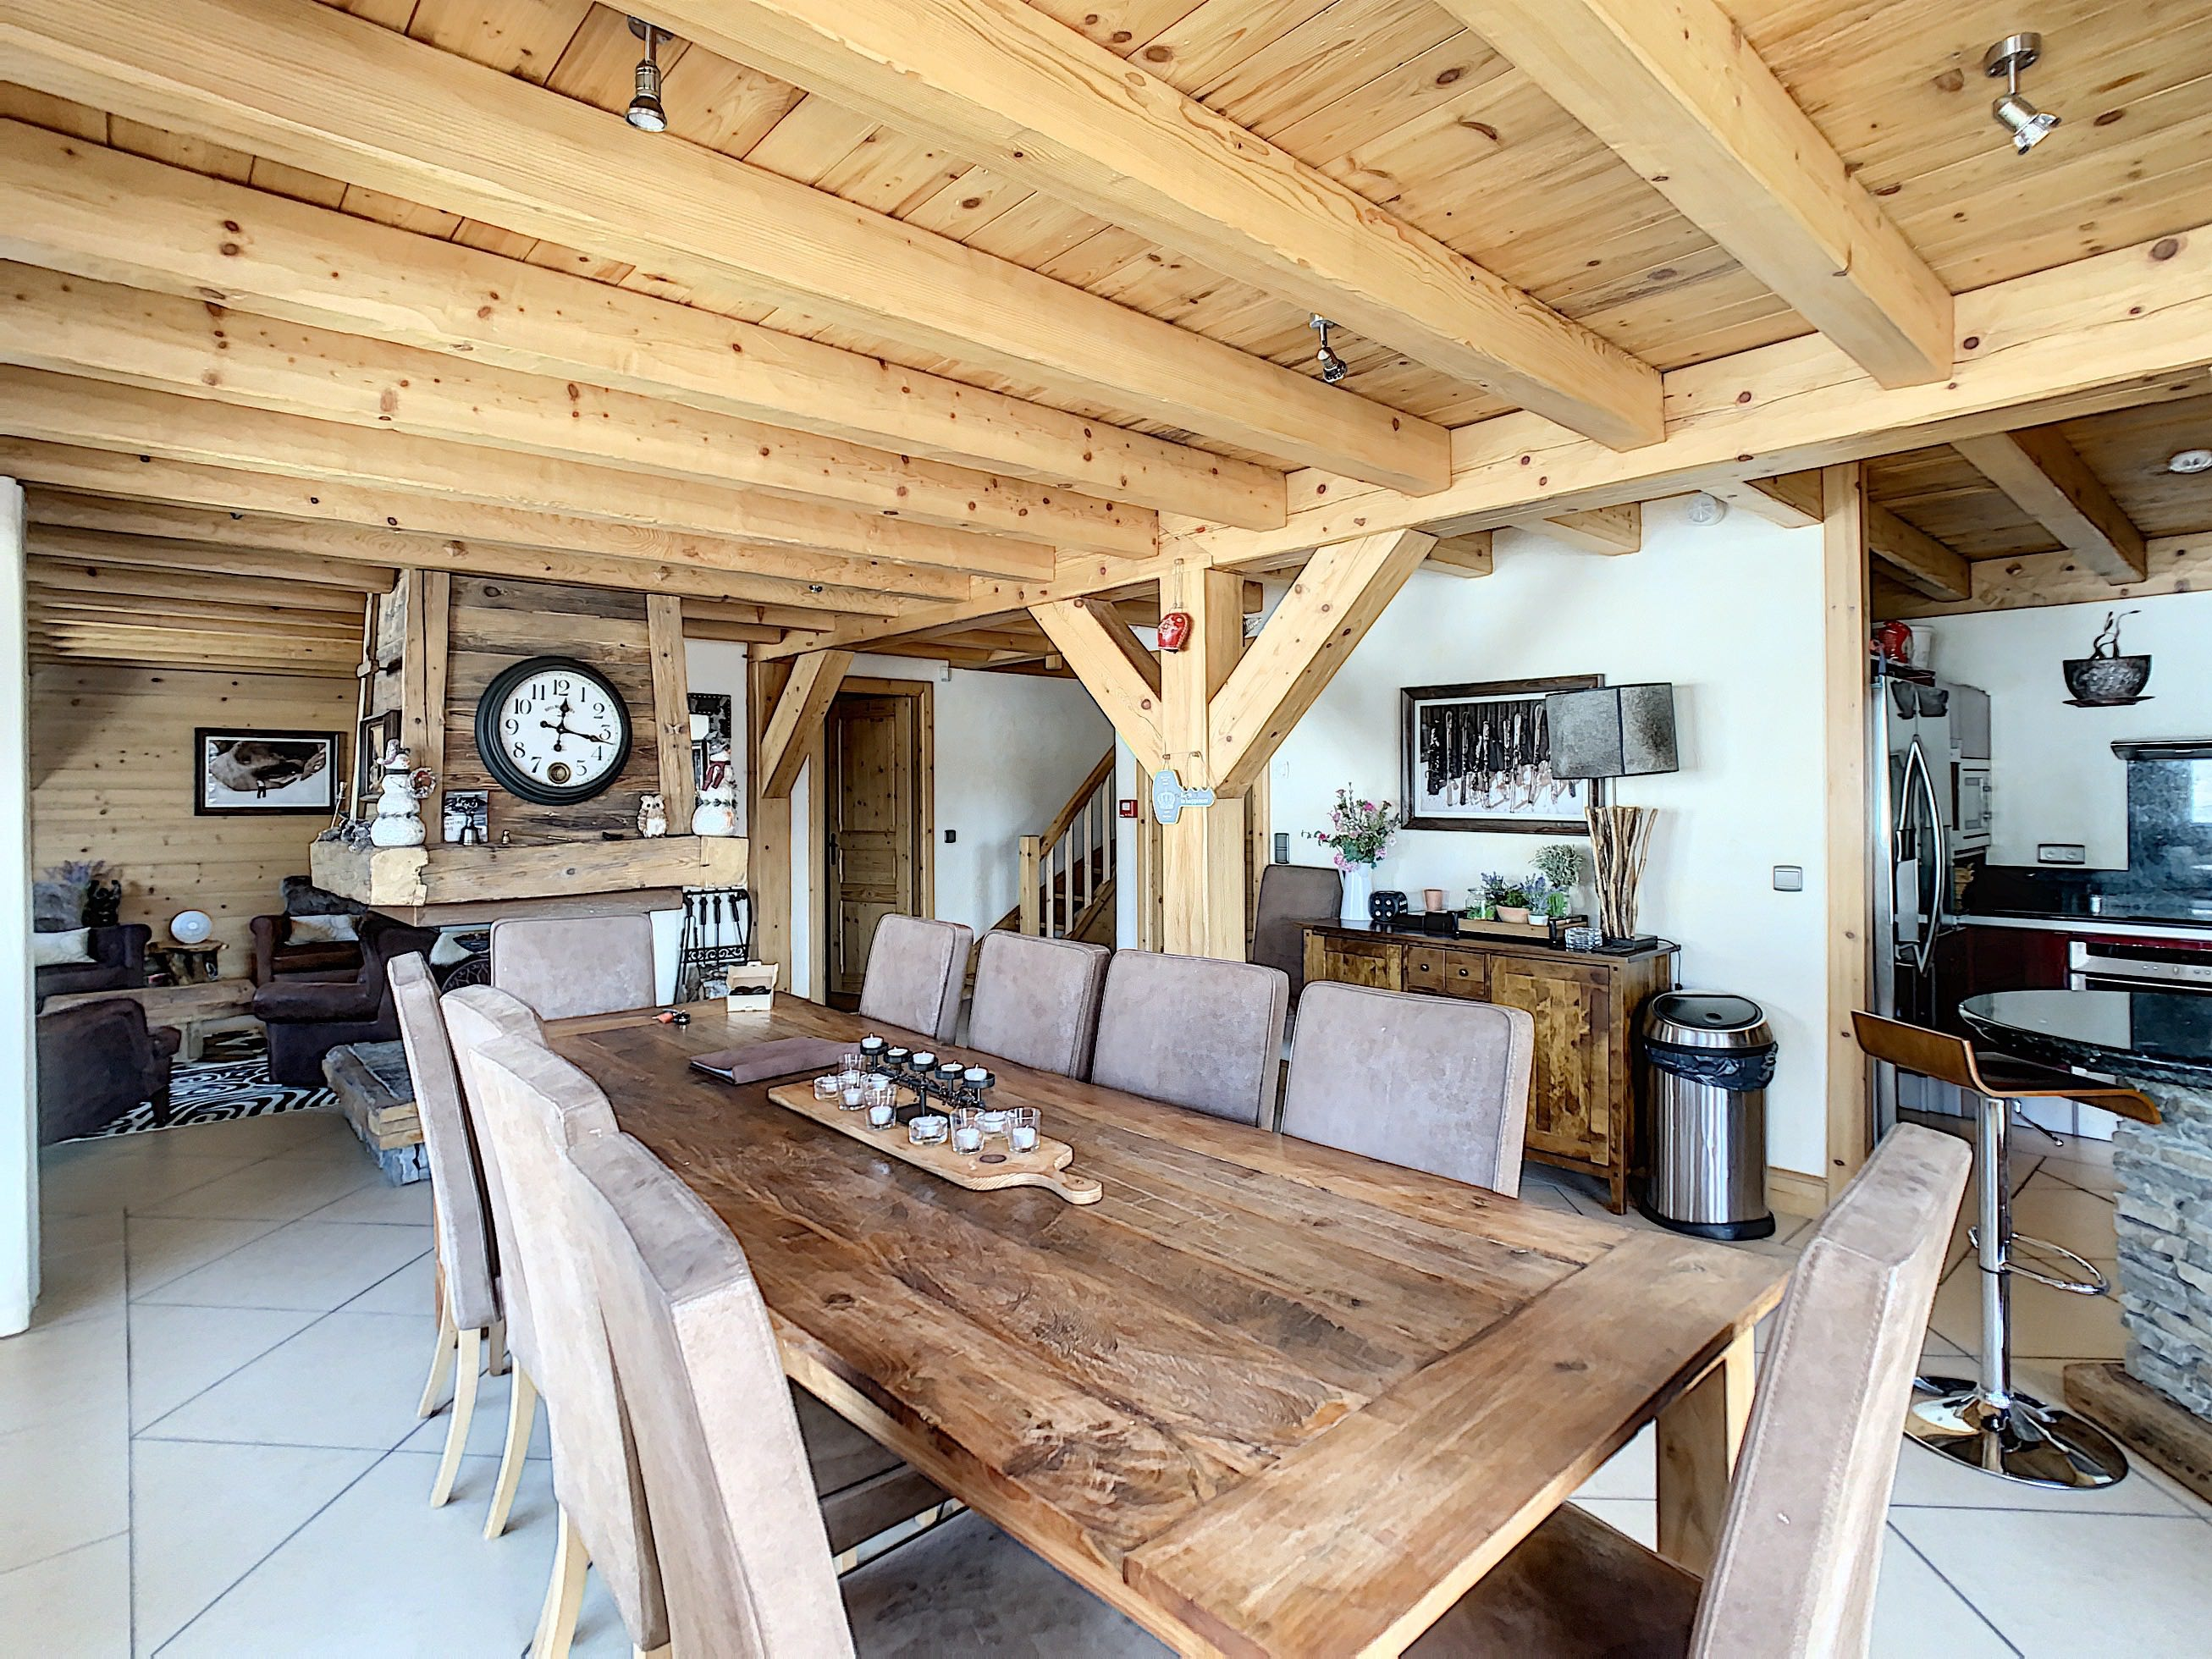 Les Gets accommodation chalets for sale in Les Gets apartments to buy in Les Gets holiday homes to buy in Les Gets